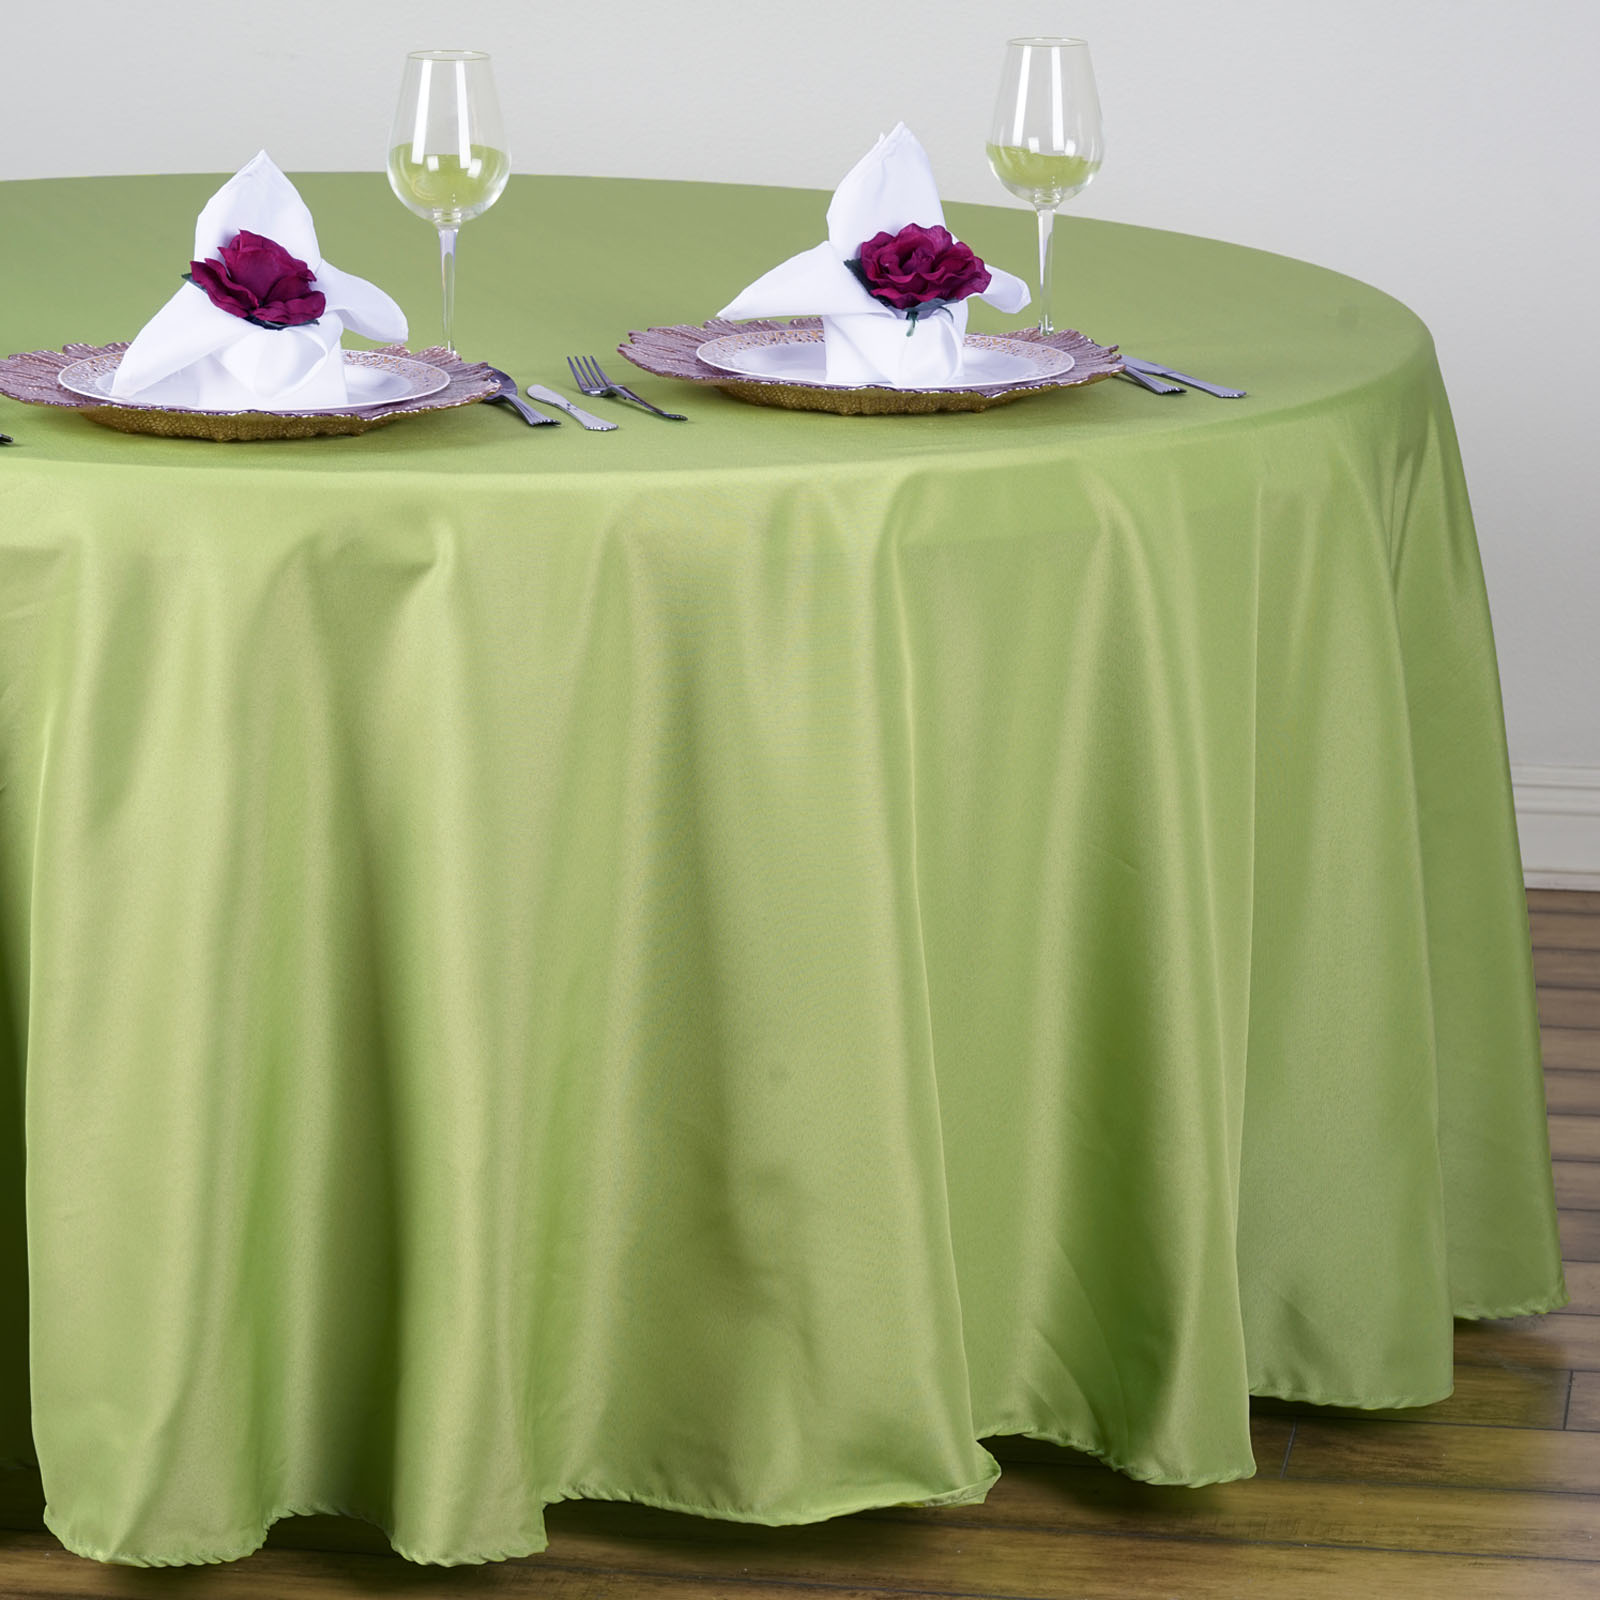 "BalsaCircle 108"" Round Polyester Tablecloth for Party Wedding Reception Catering Dining Home Table Linens"